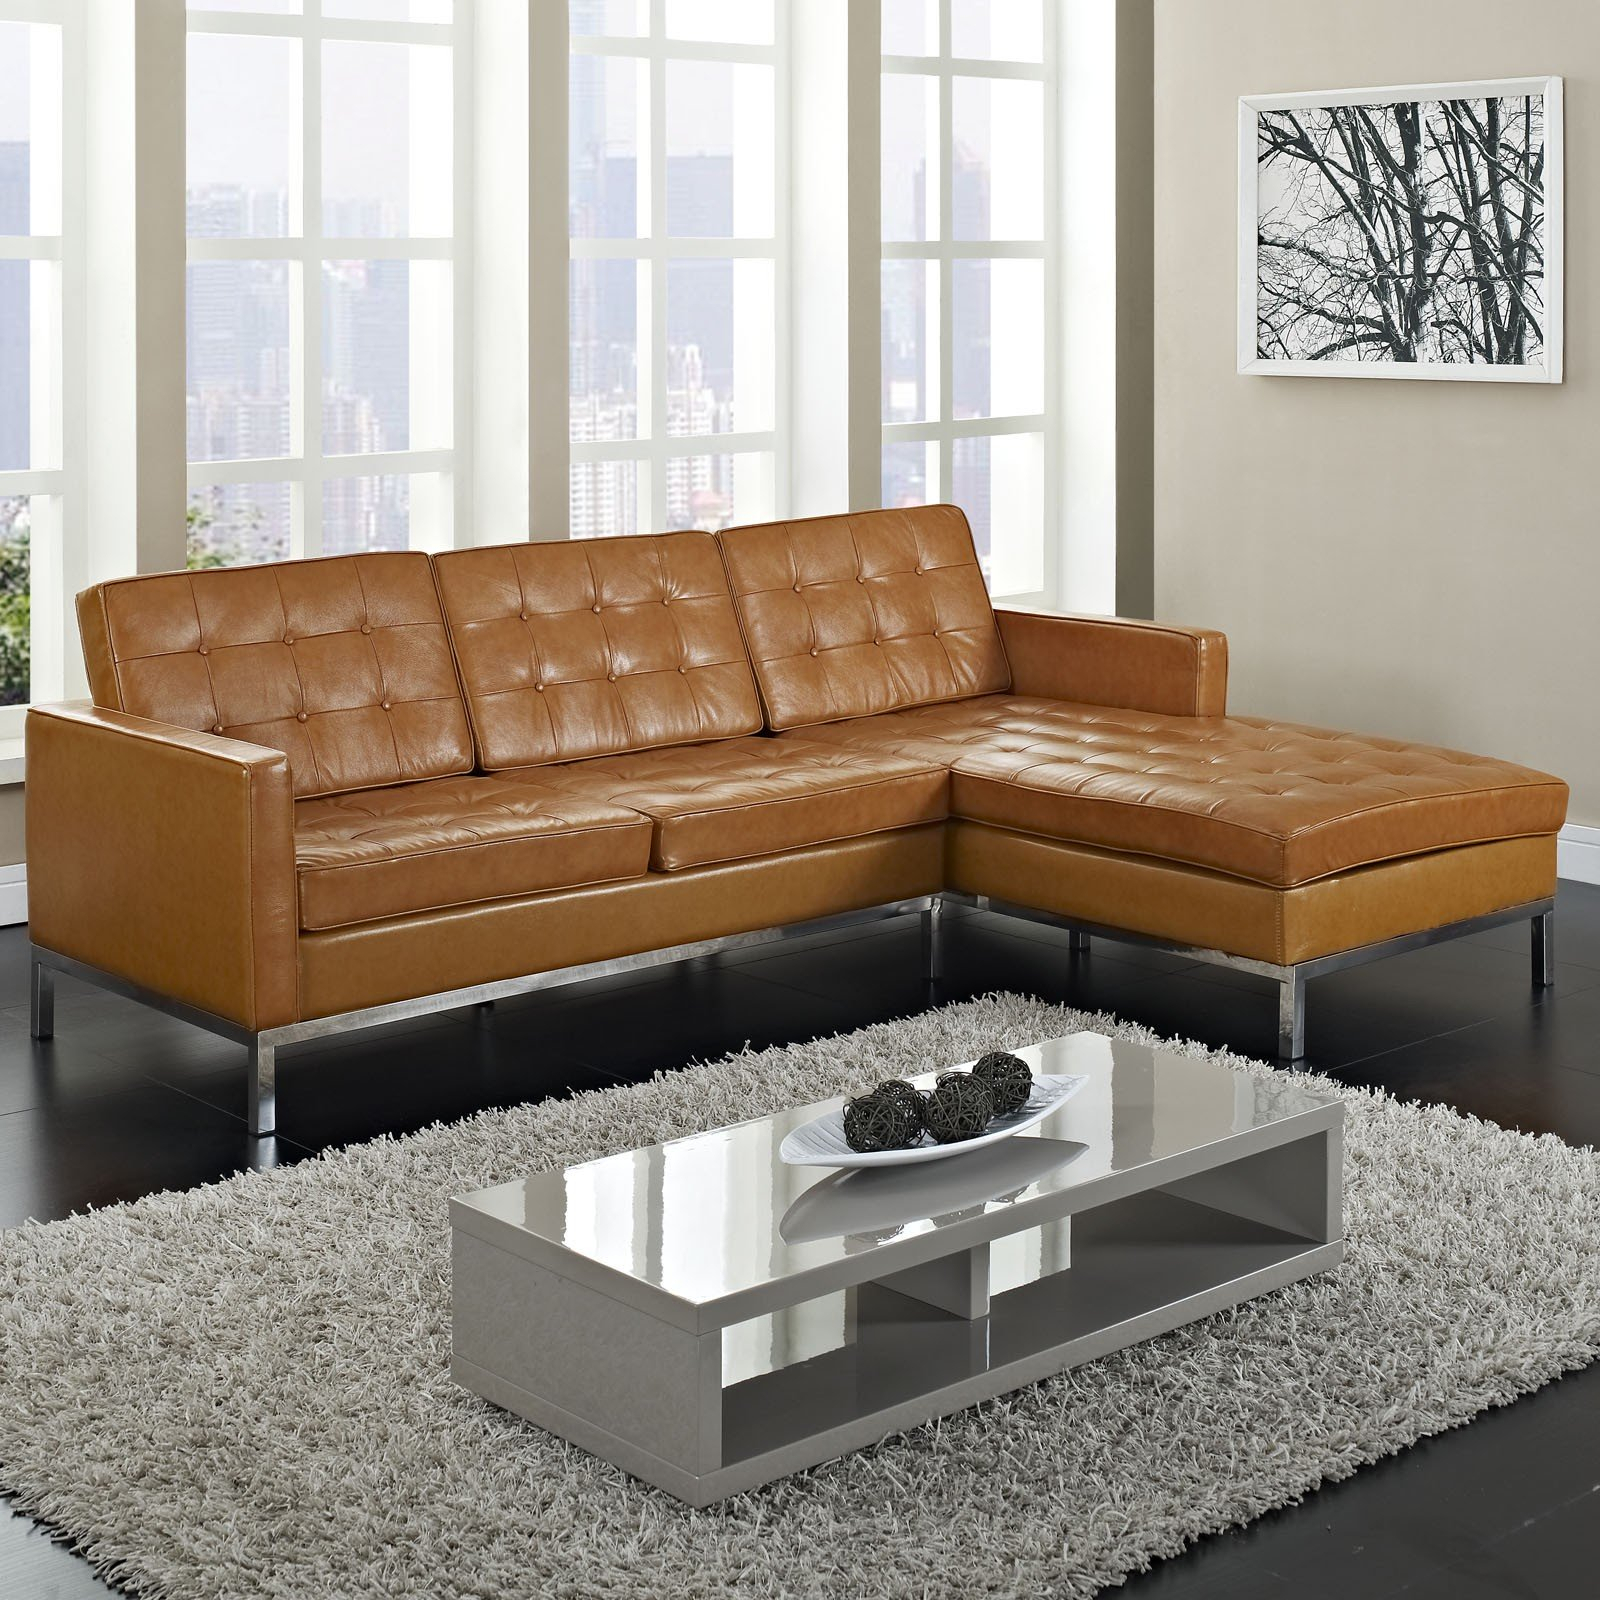 Simple Review About Living Room Furniture: Small Sectional Pertaining To Easton Small Space Sectional Futon Sofas (View 12 of 15)